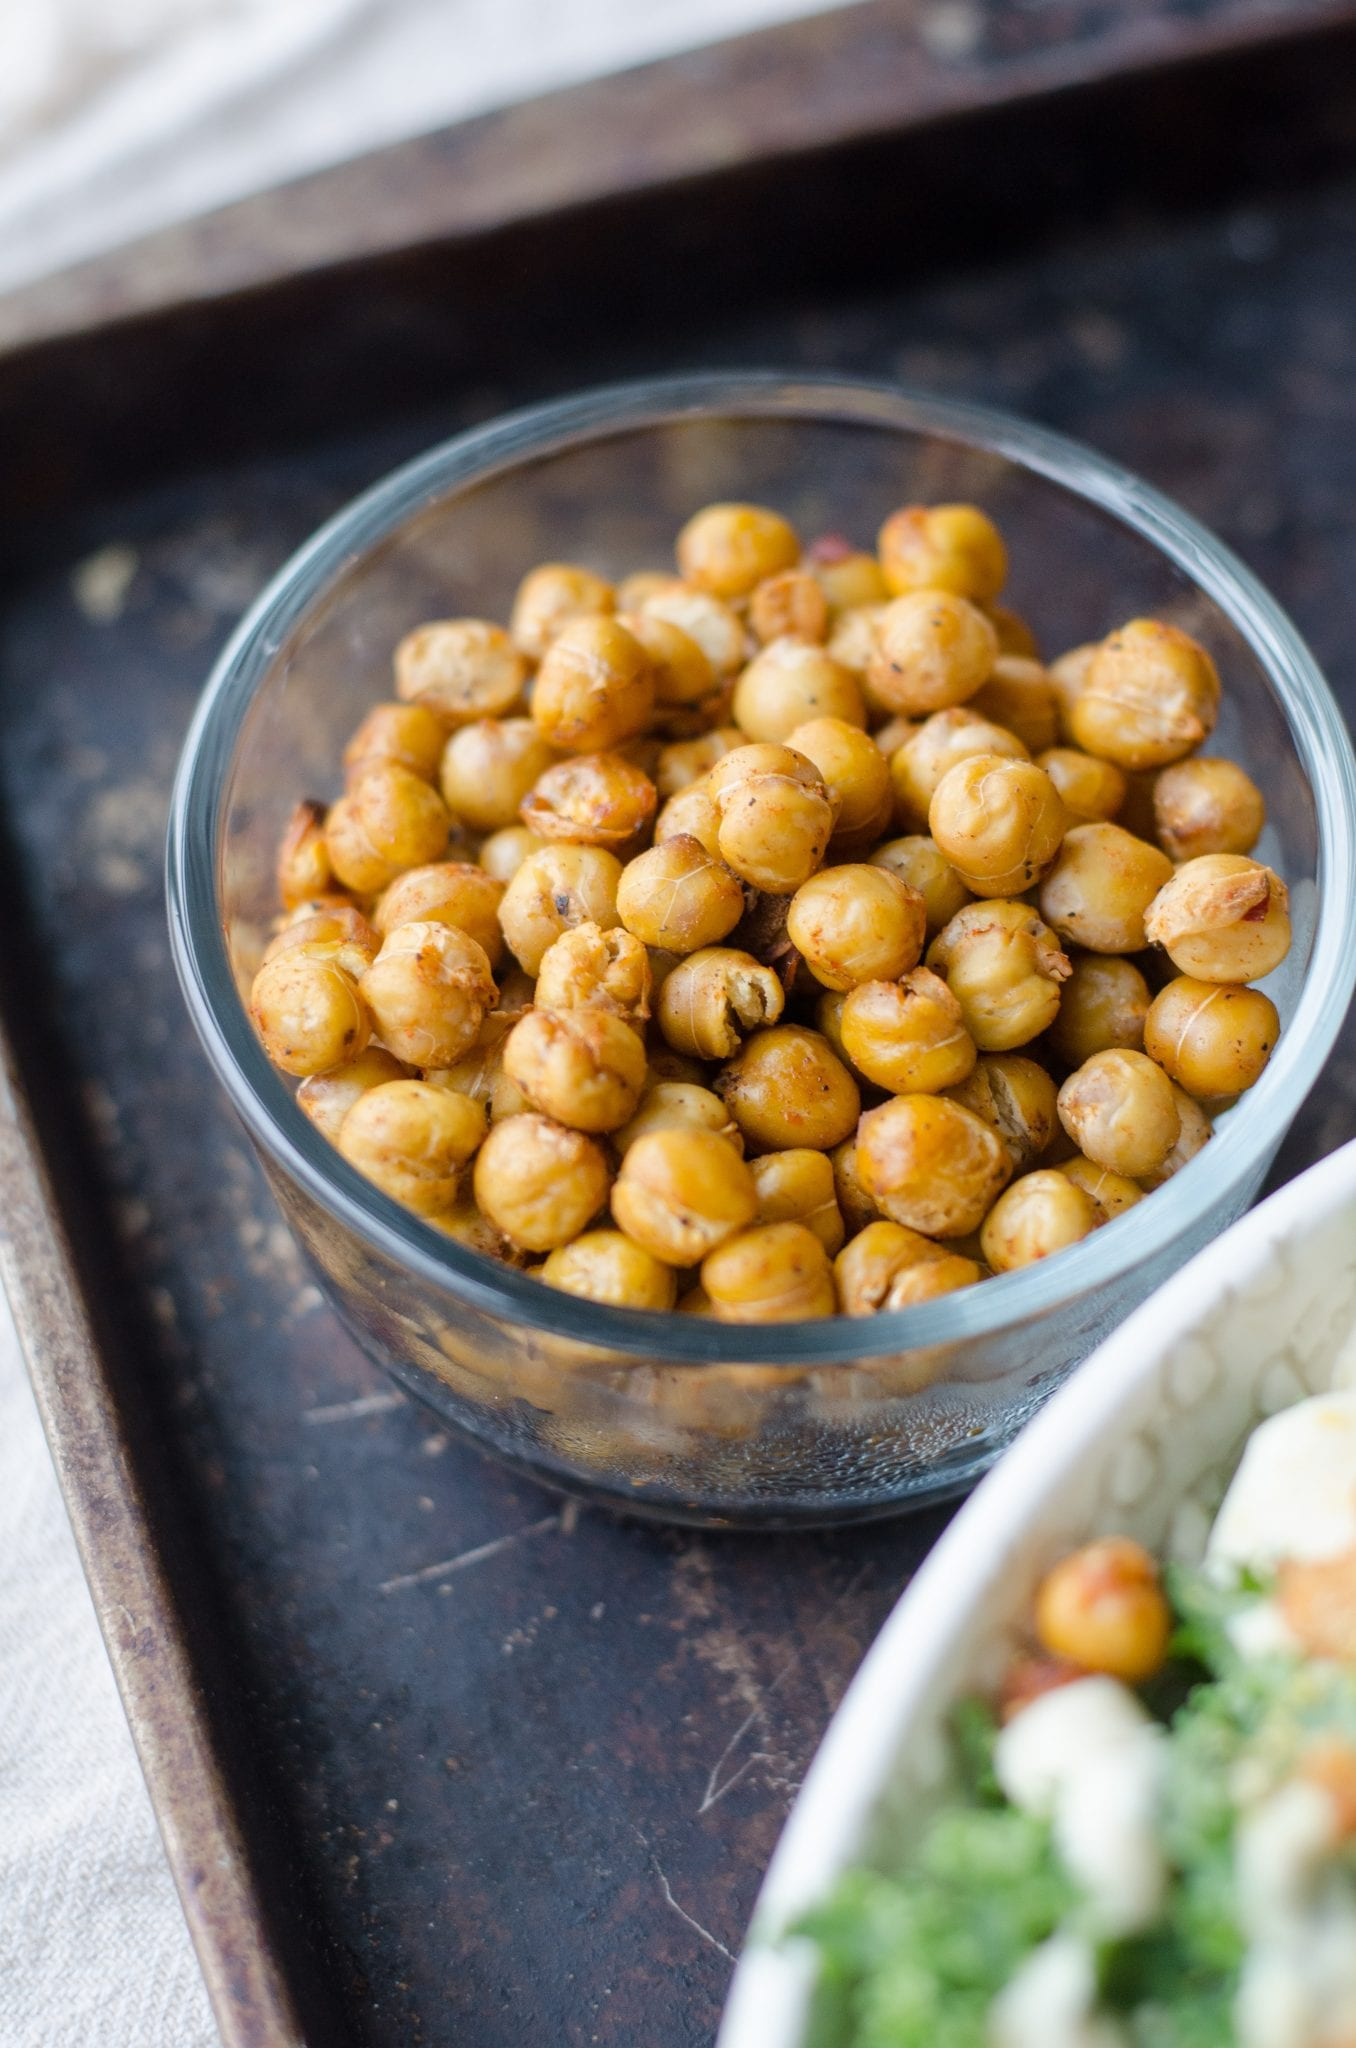 Chick Peas help with hair growth